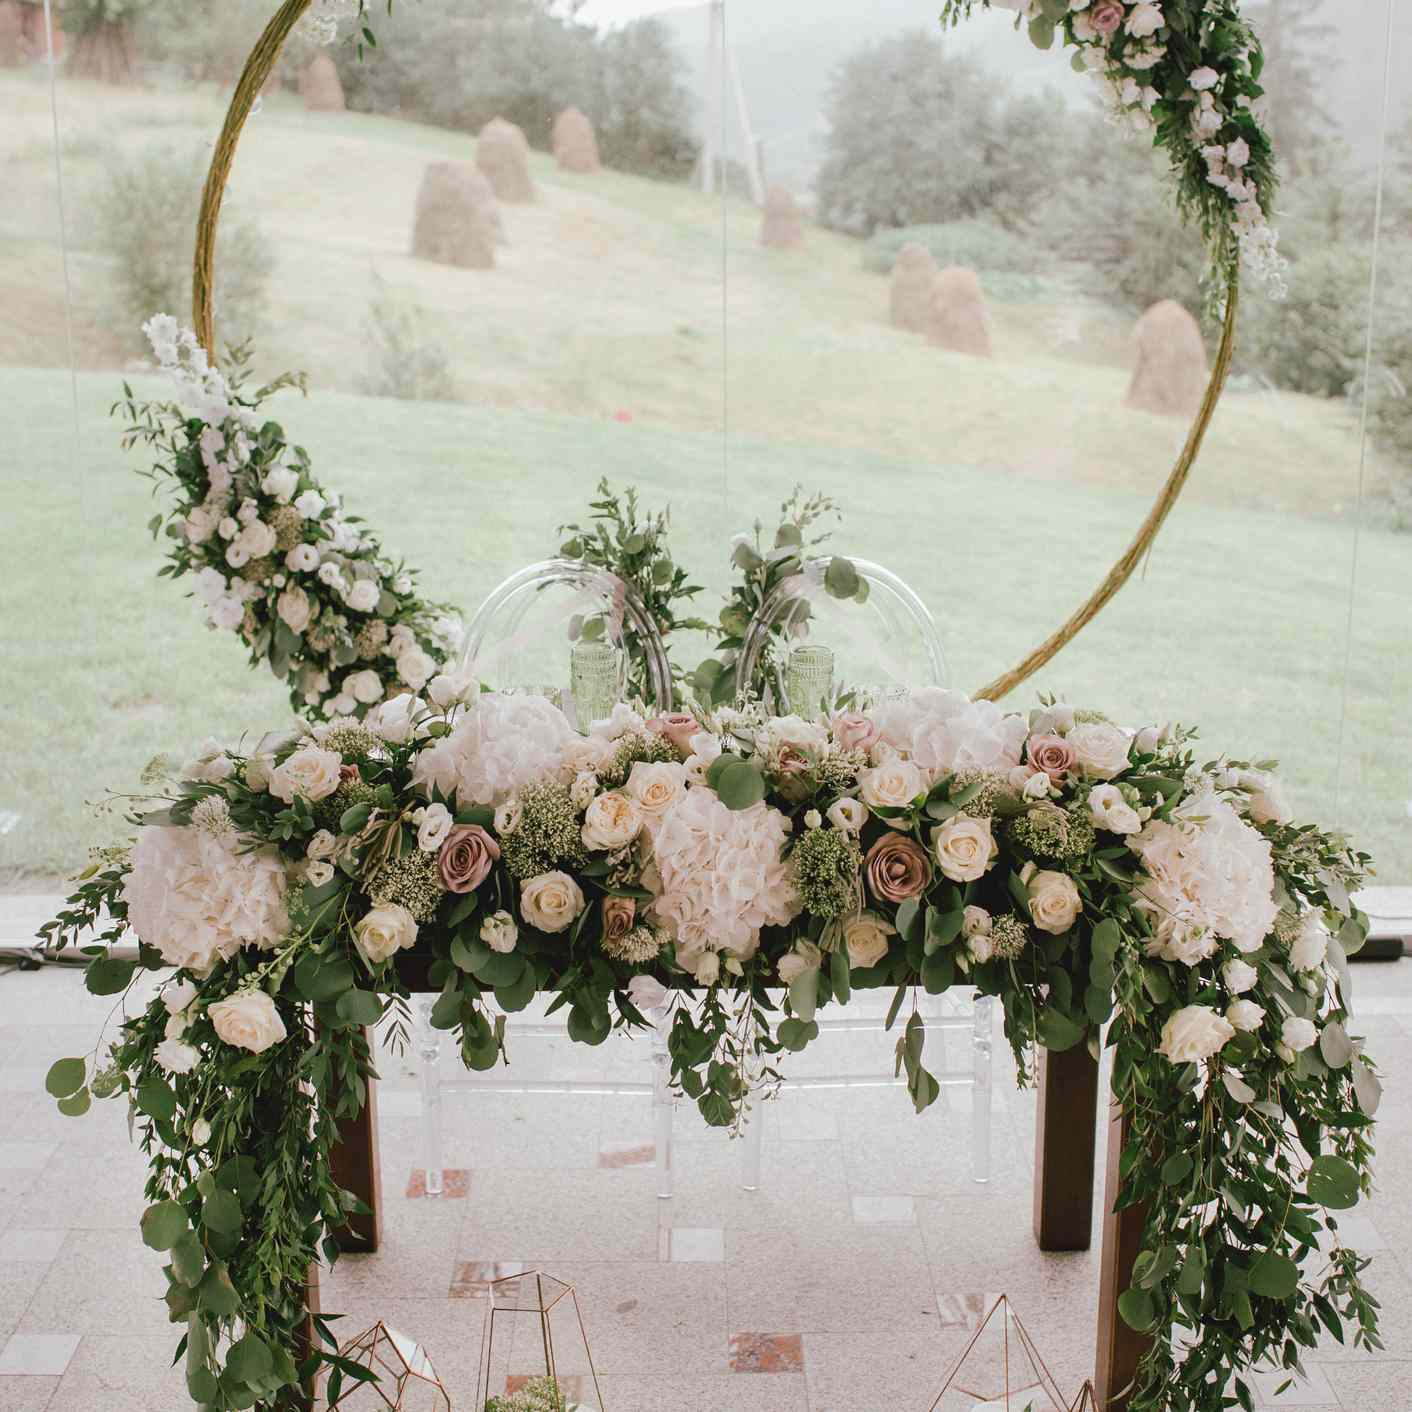 Sweetheart table with lush floral accents and circular installation